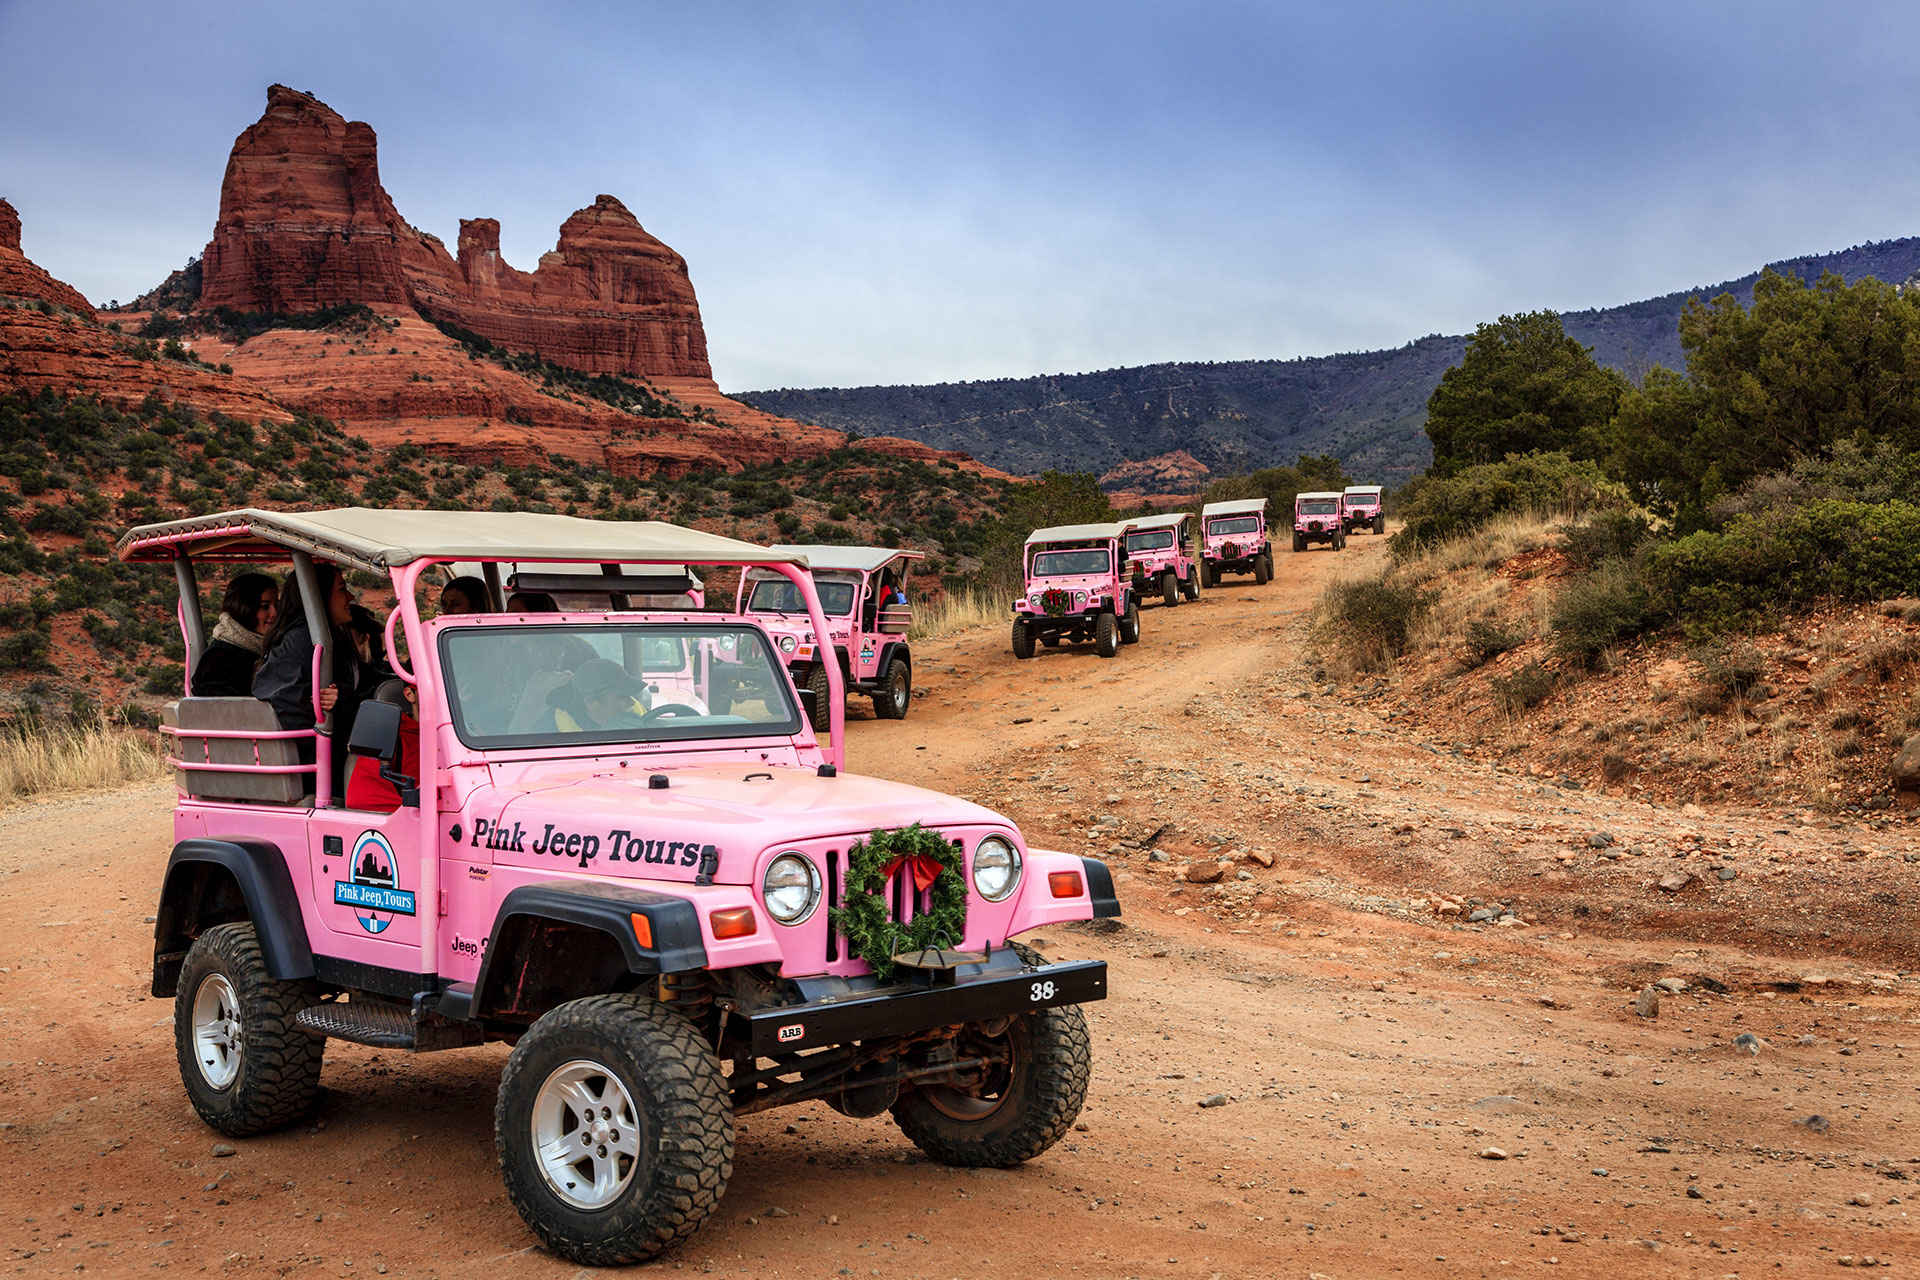 Pink Jeep Tours; Courtesy of Alexey Stiop/Shutterstock.com